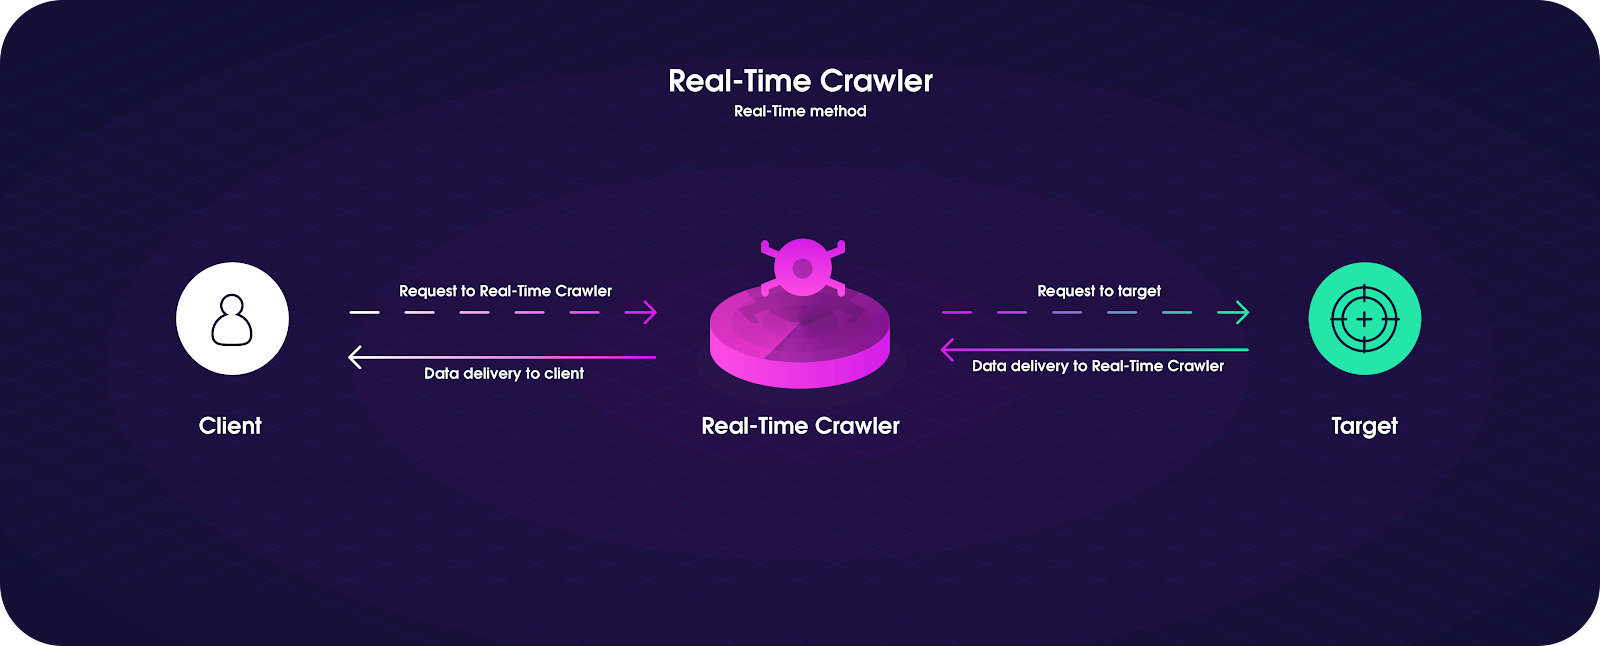 How does Real-Time Crawler work